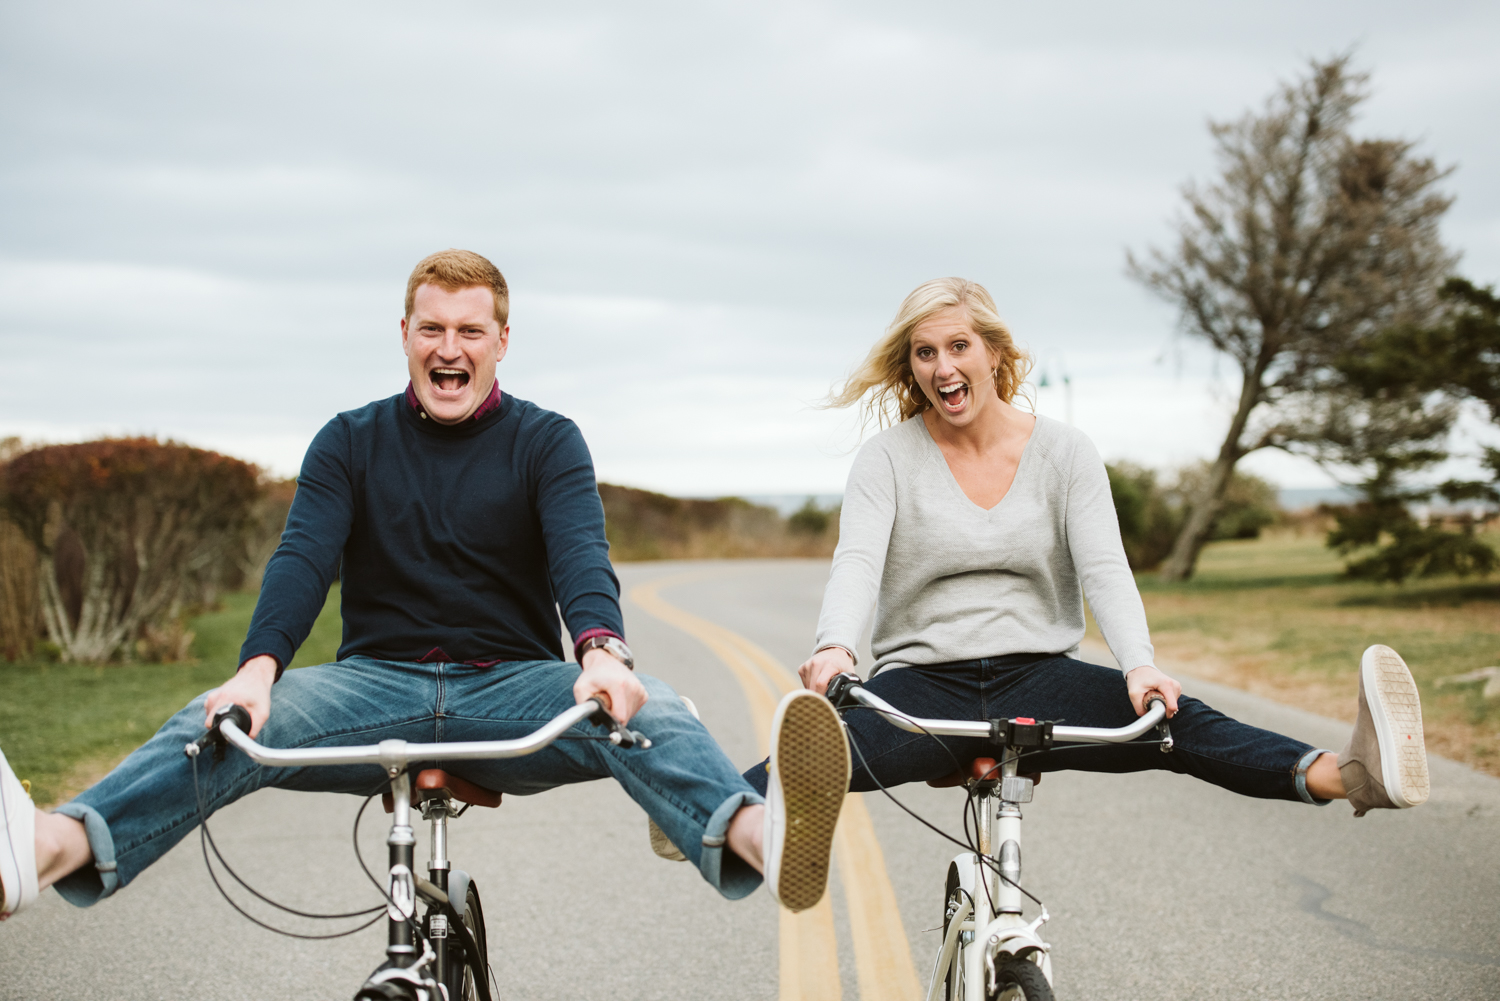 engagement_session_marthas_vineyard_DSC_1577.jpg